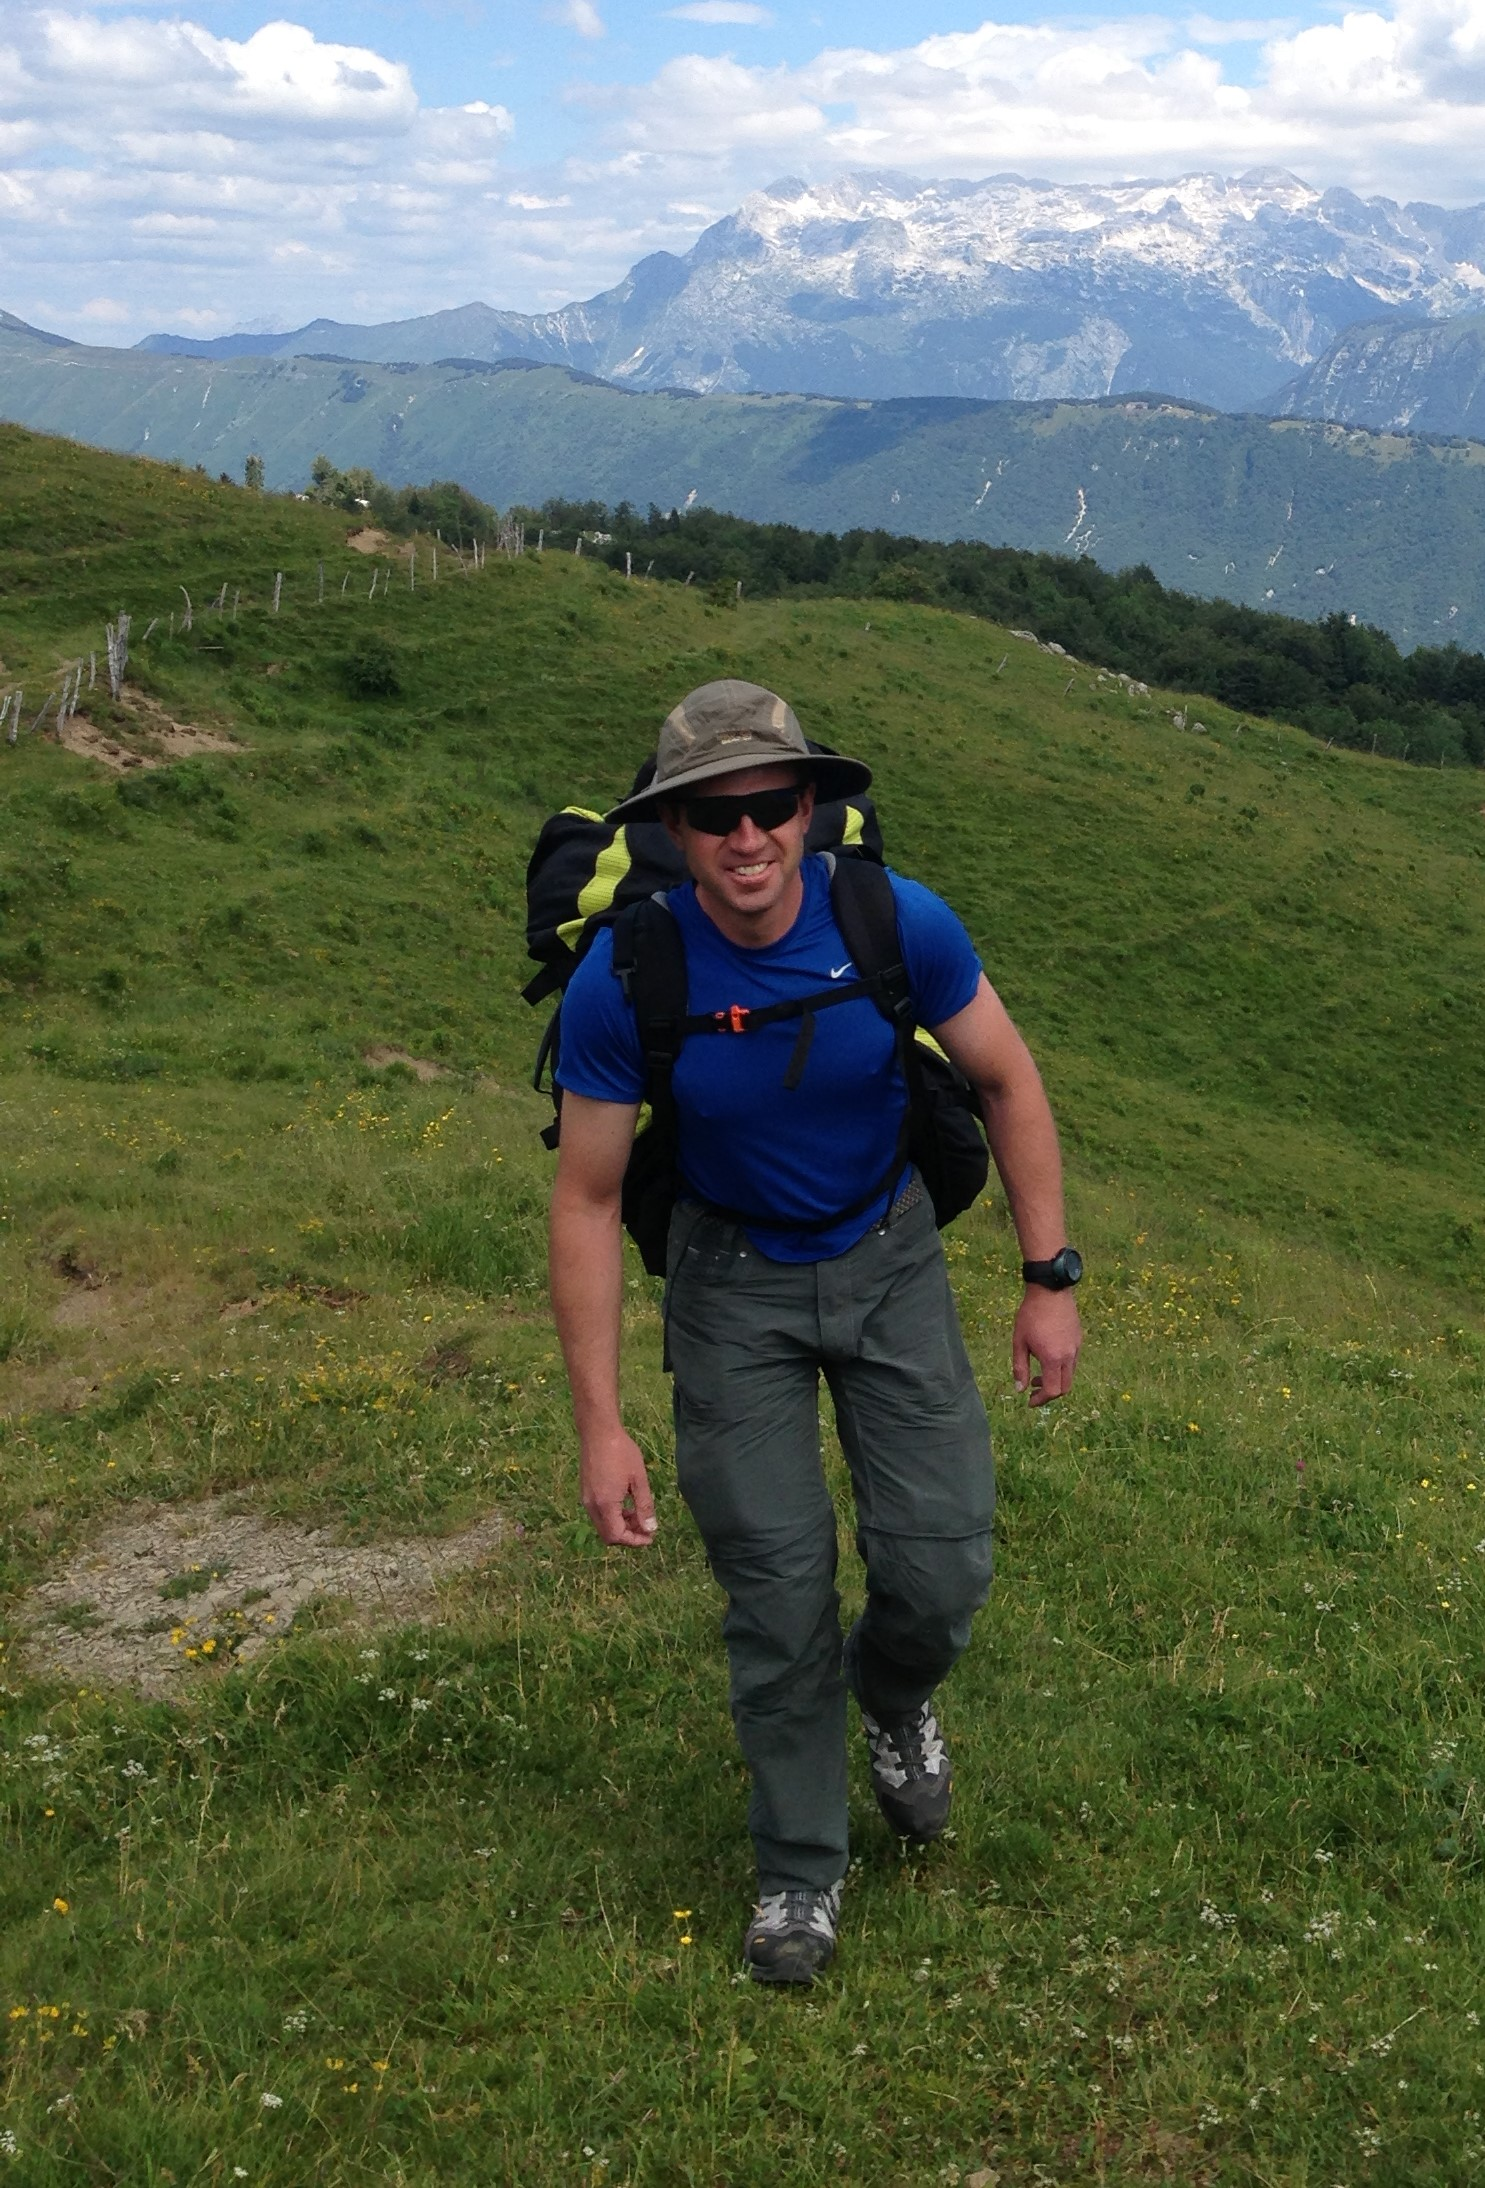 Dr. Steve D. Bowman, Geologic Hazards Program Manager with the Utah Geological Survey and member of the ASF DAAC User Working Group, enjoying the Julian Alps in Slovenia.